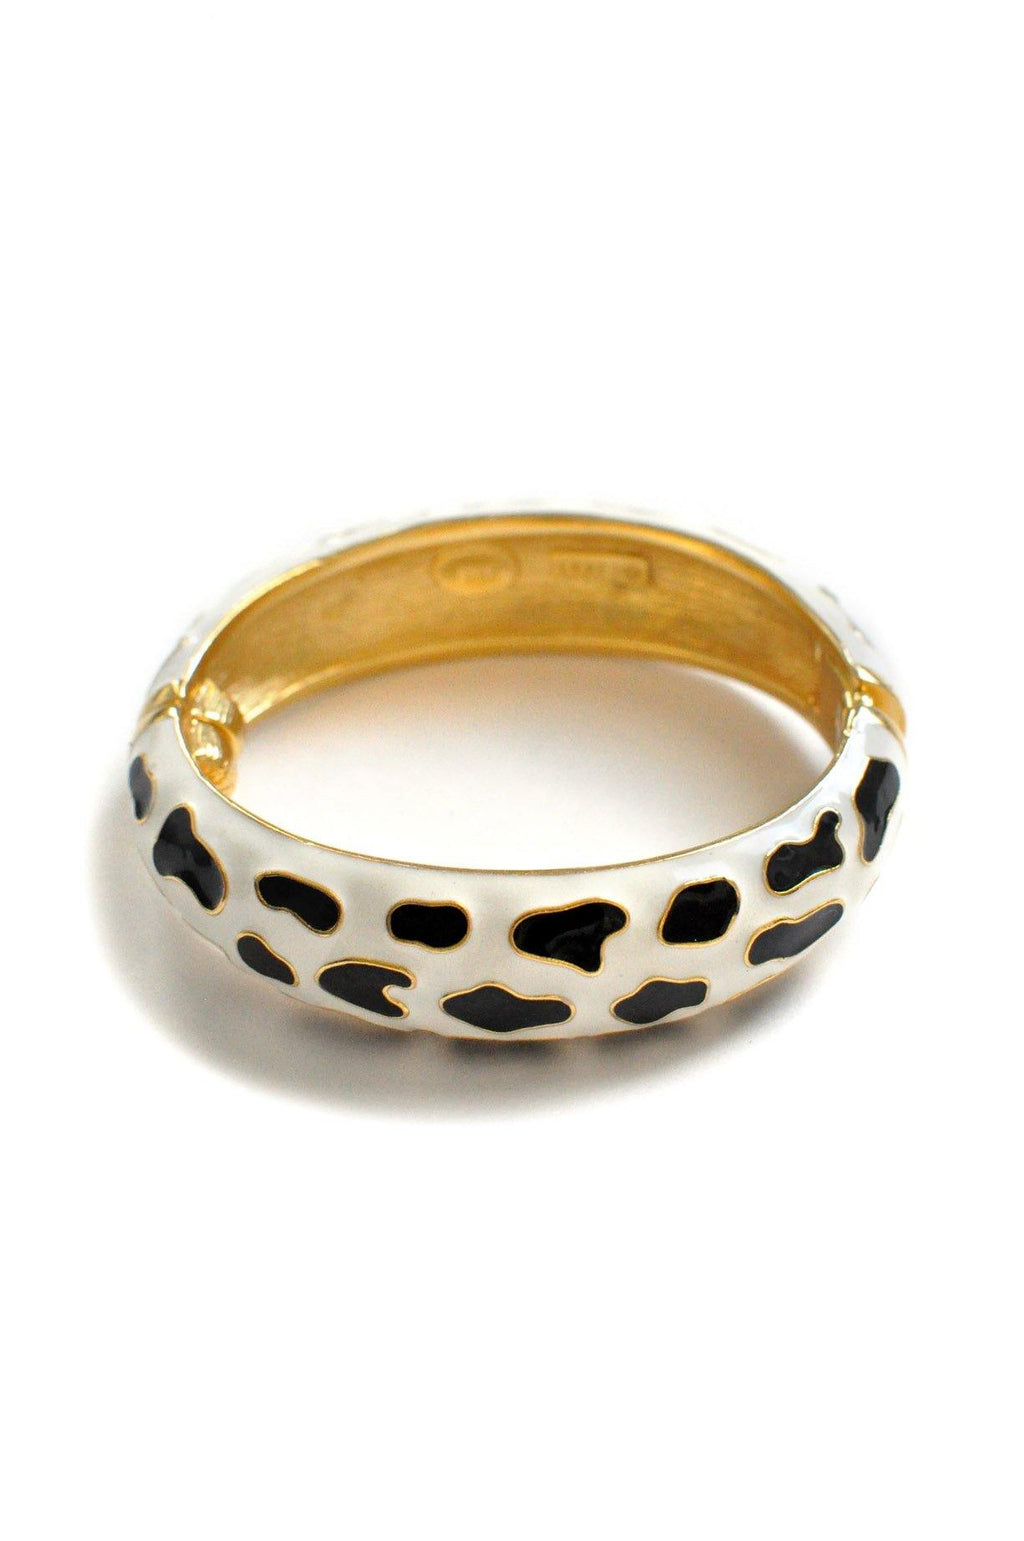 Spotted Enamel Bangle Bracelet